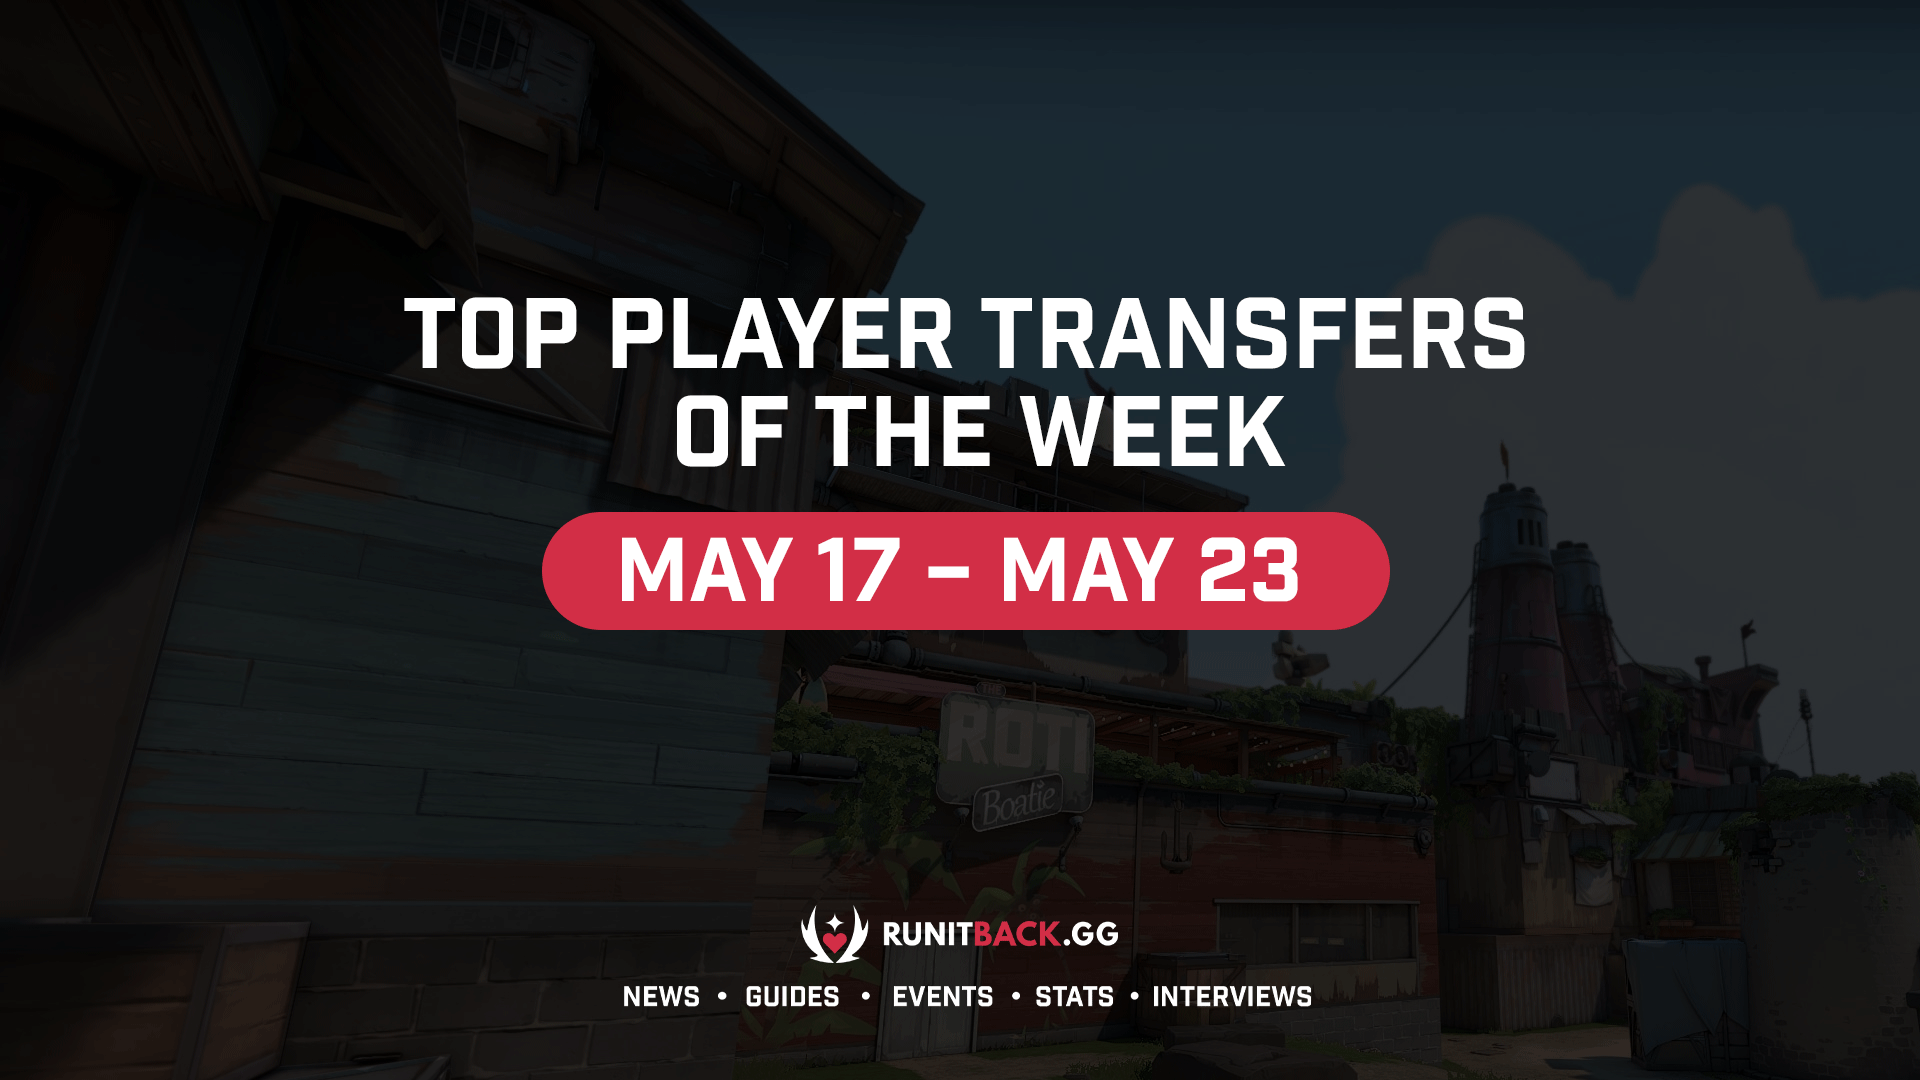 Top Player Transfers of the Week: May 17 – May 23